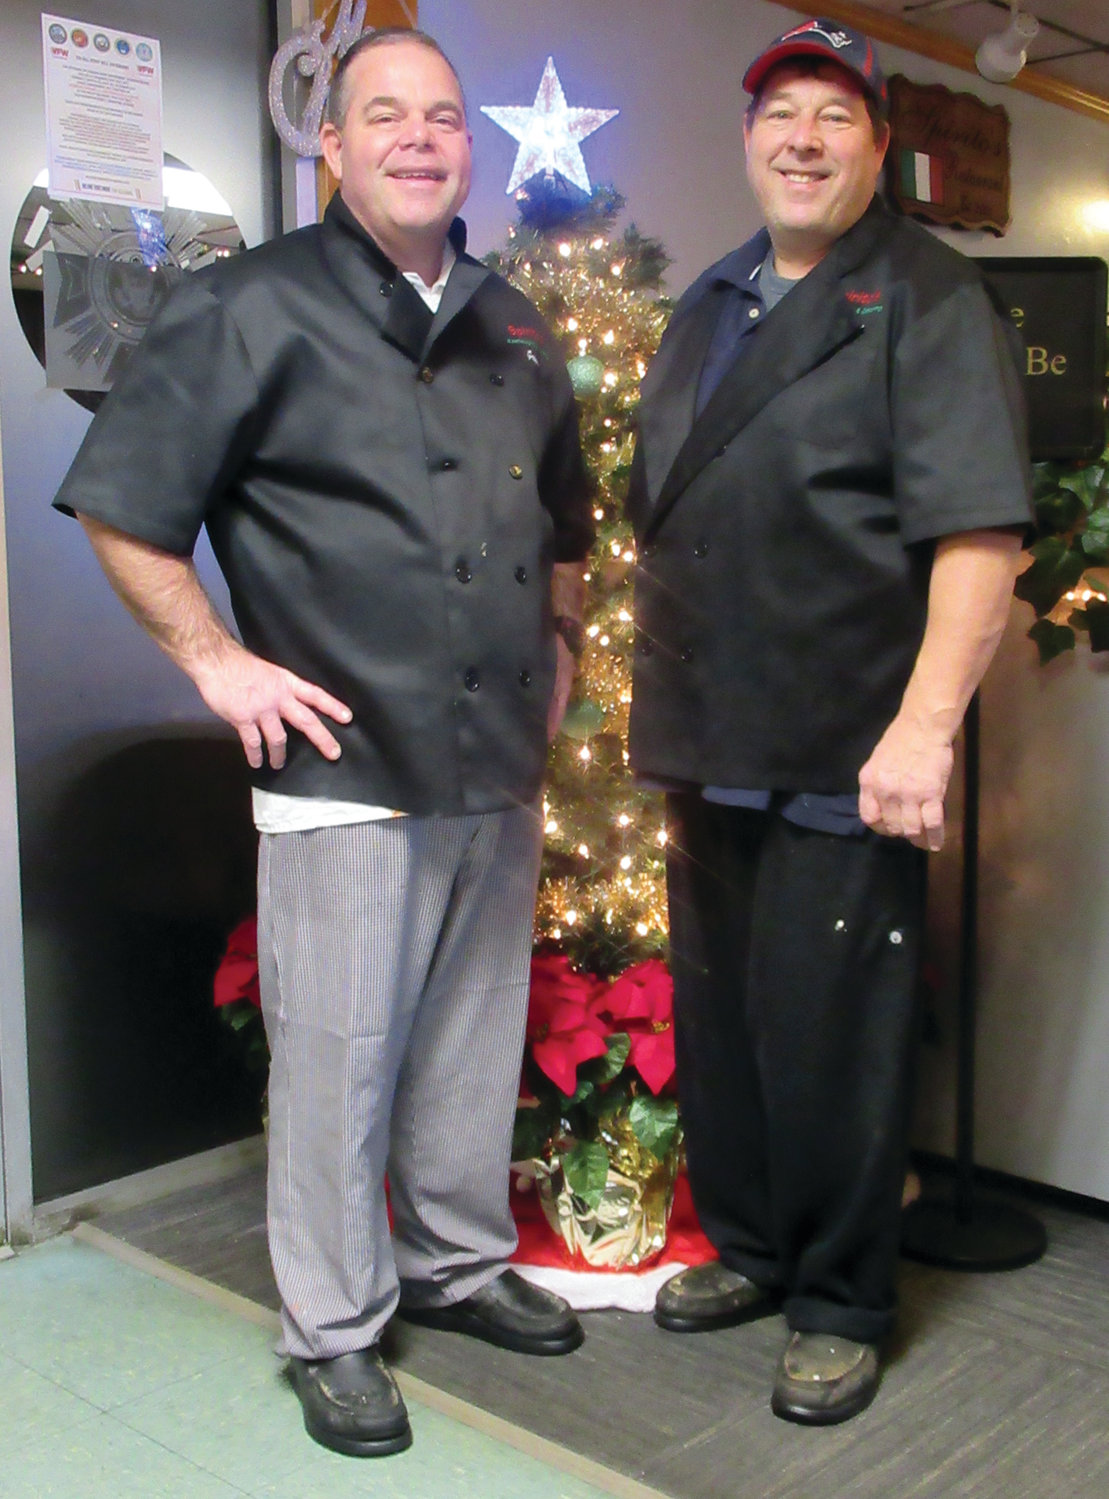 CLASSIC CHEFS: The brothers Spirito – Greg and David – will prepare the Richard D. Salzillo Memorial Game Dinner on Sunday, Jan. 26, 2020, inside the Kelley-Gazzerro VFW Post 2812, where they also operate their famed restaurant Spirito's Restaurant and catering business.